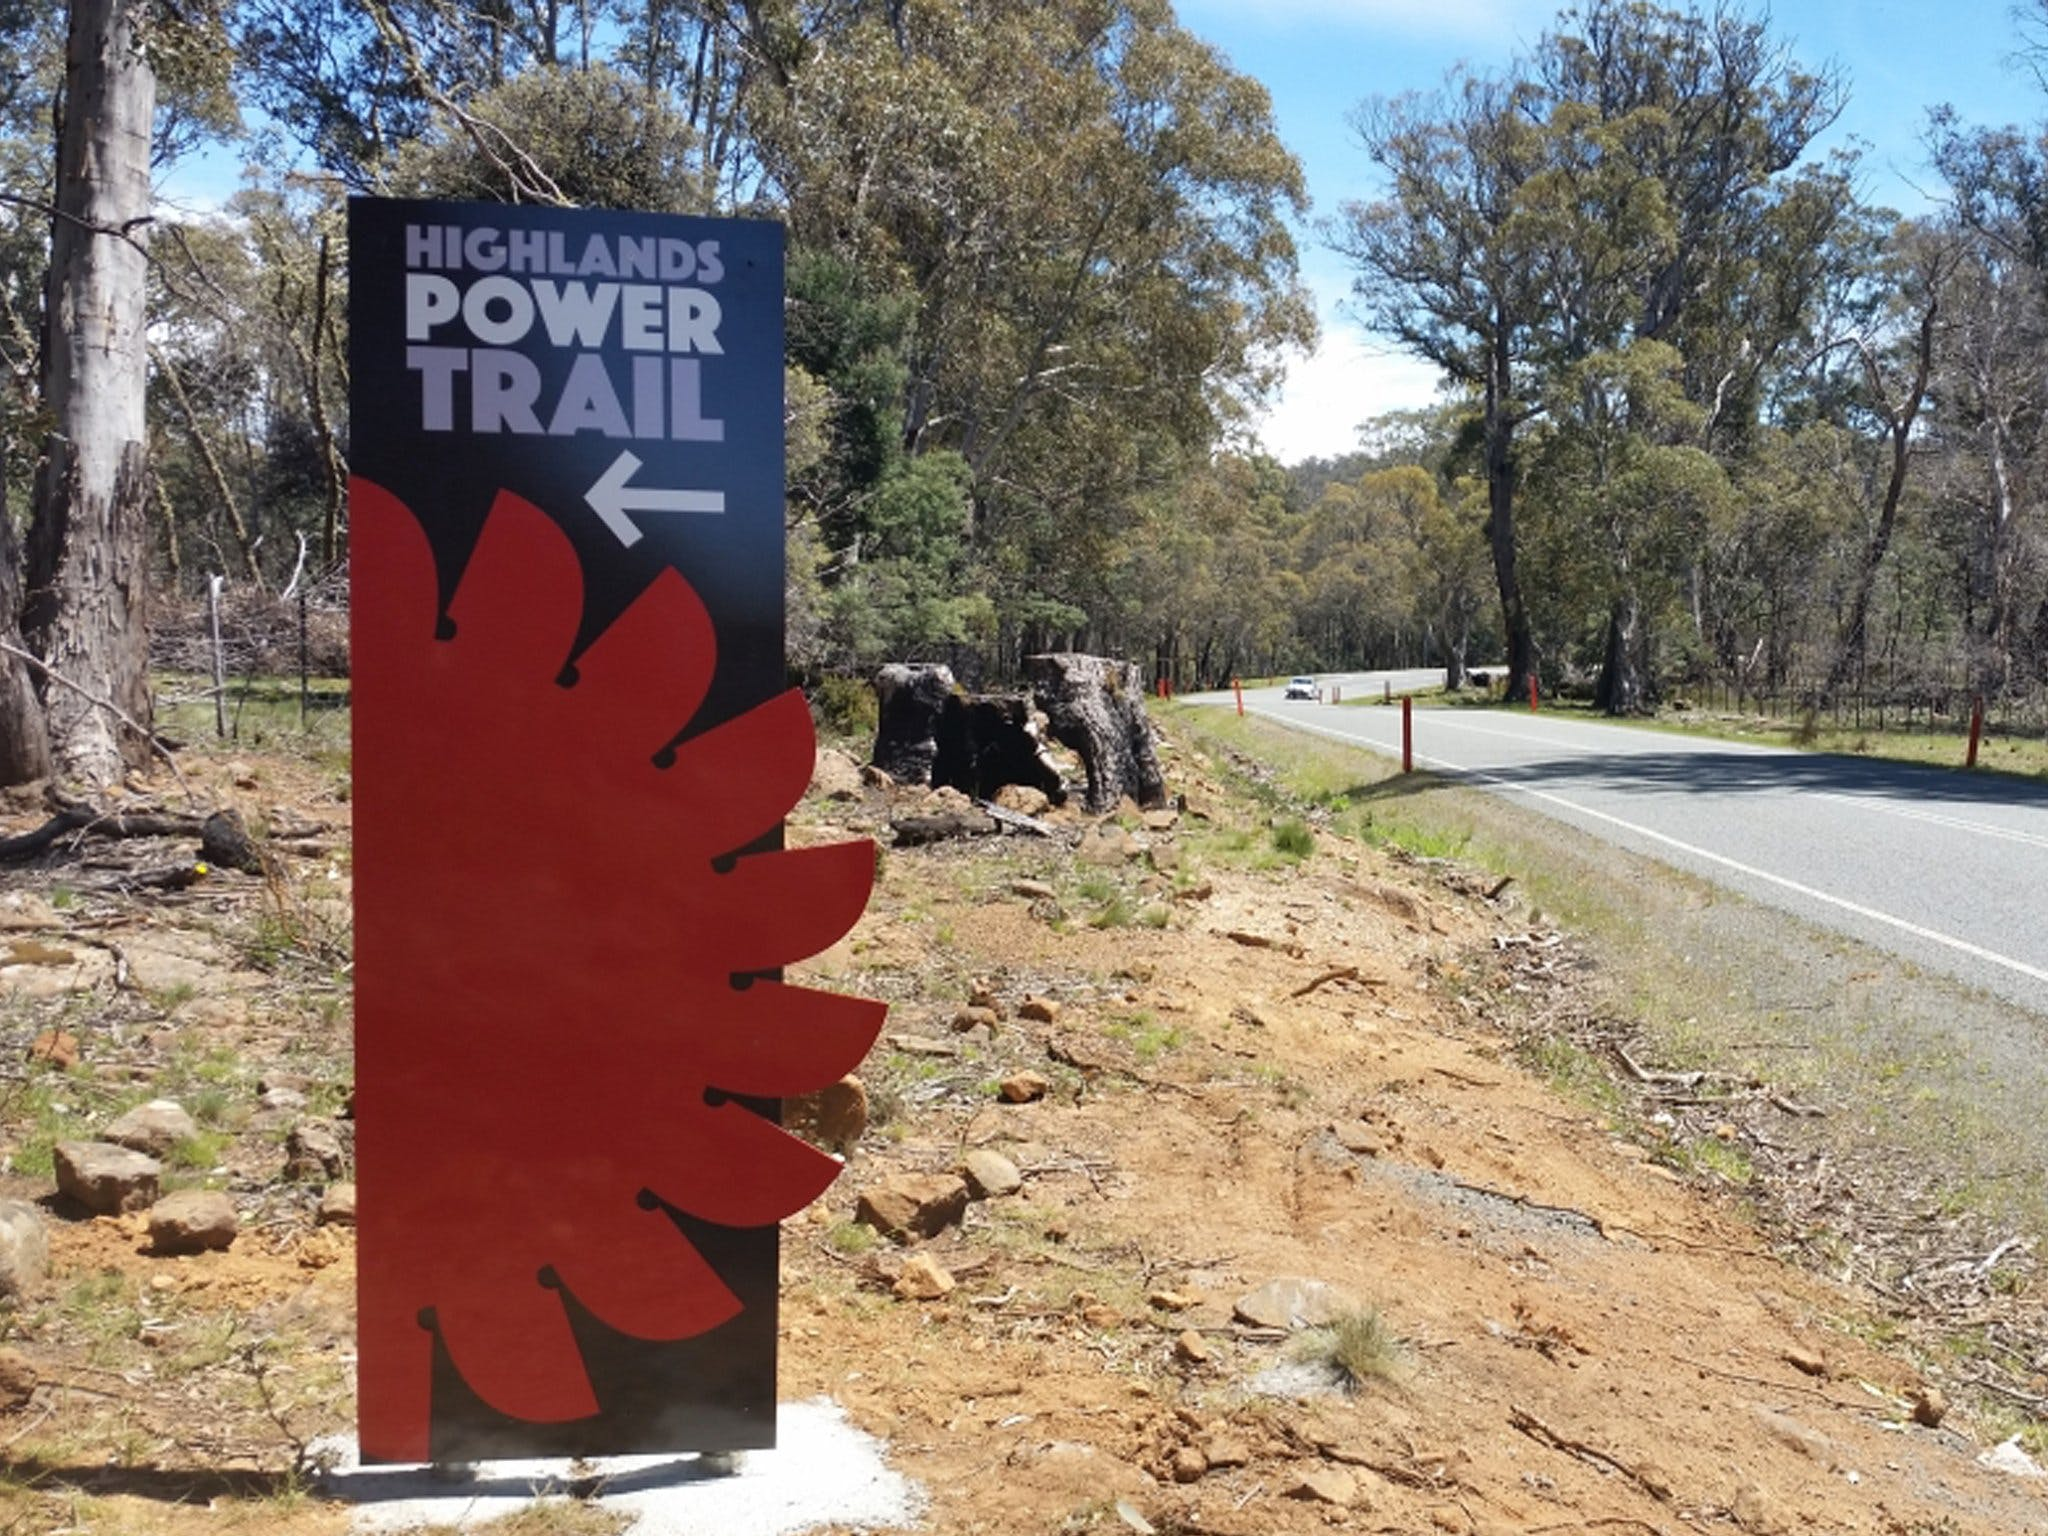 Highlands Power Trail - Attractions Sydney